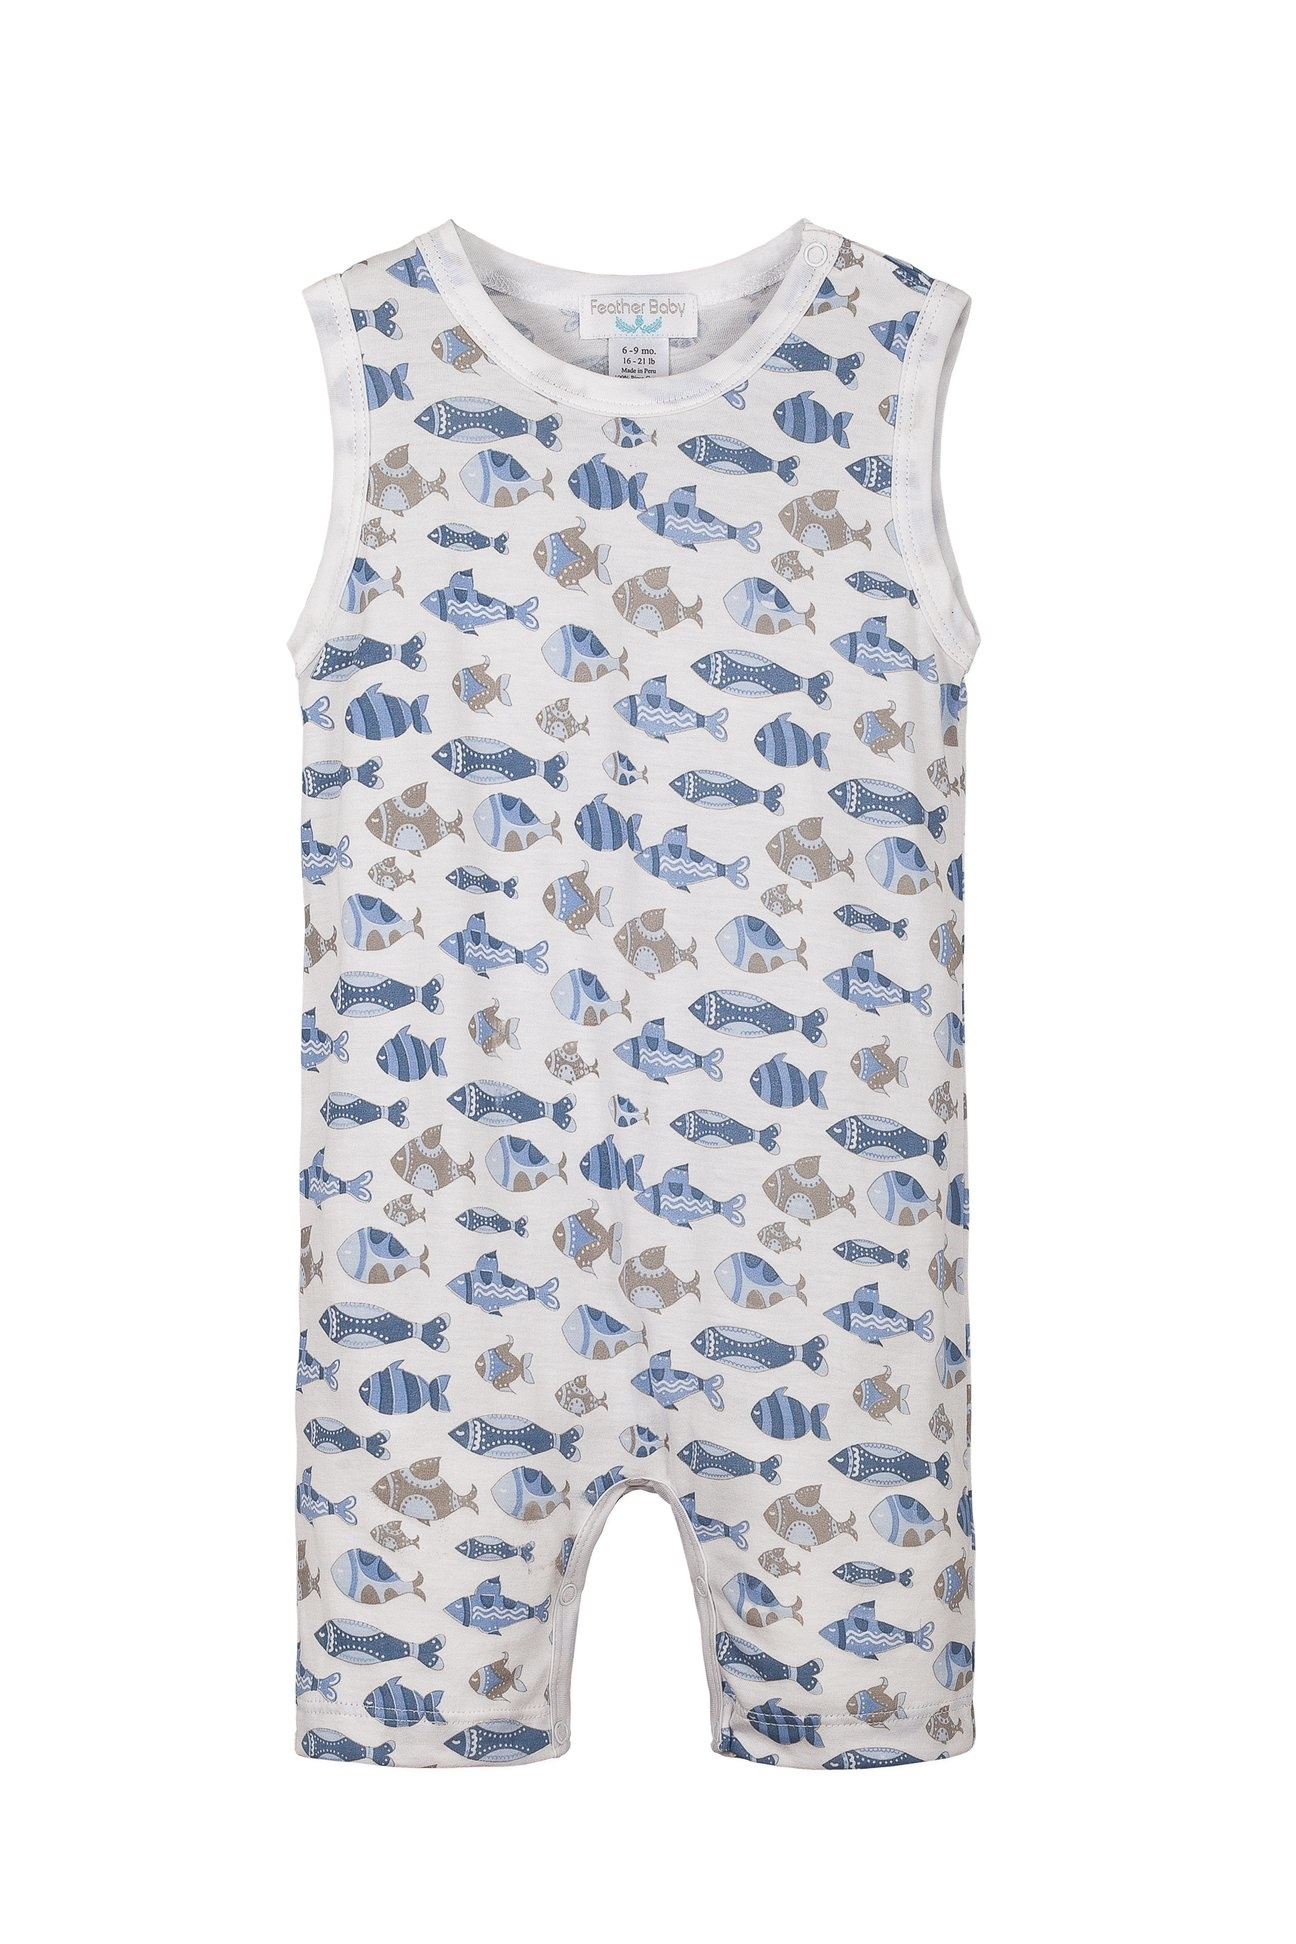 Feather Baby Tanked Romper - Skinny Fish - Blue on Hhite